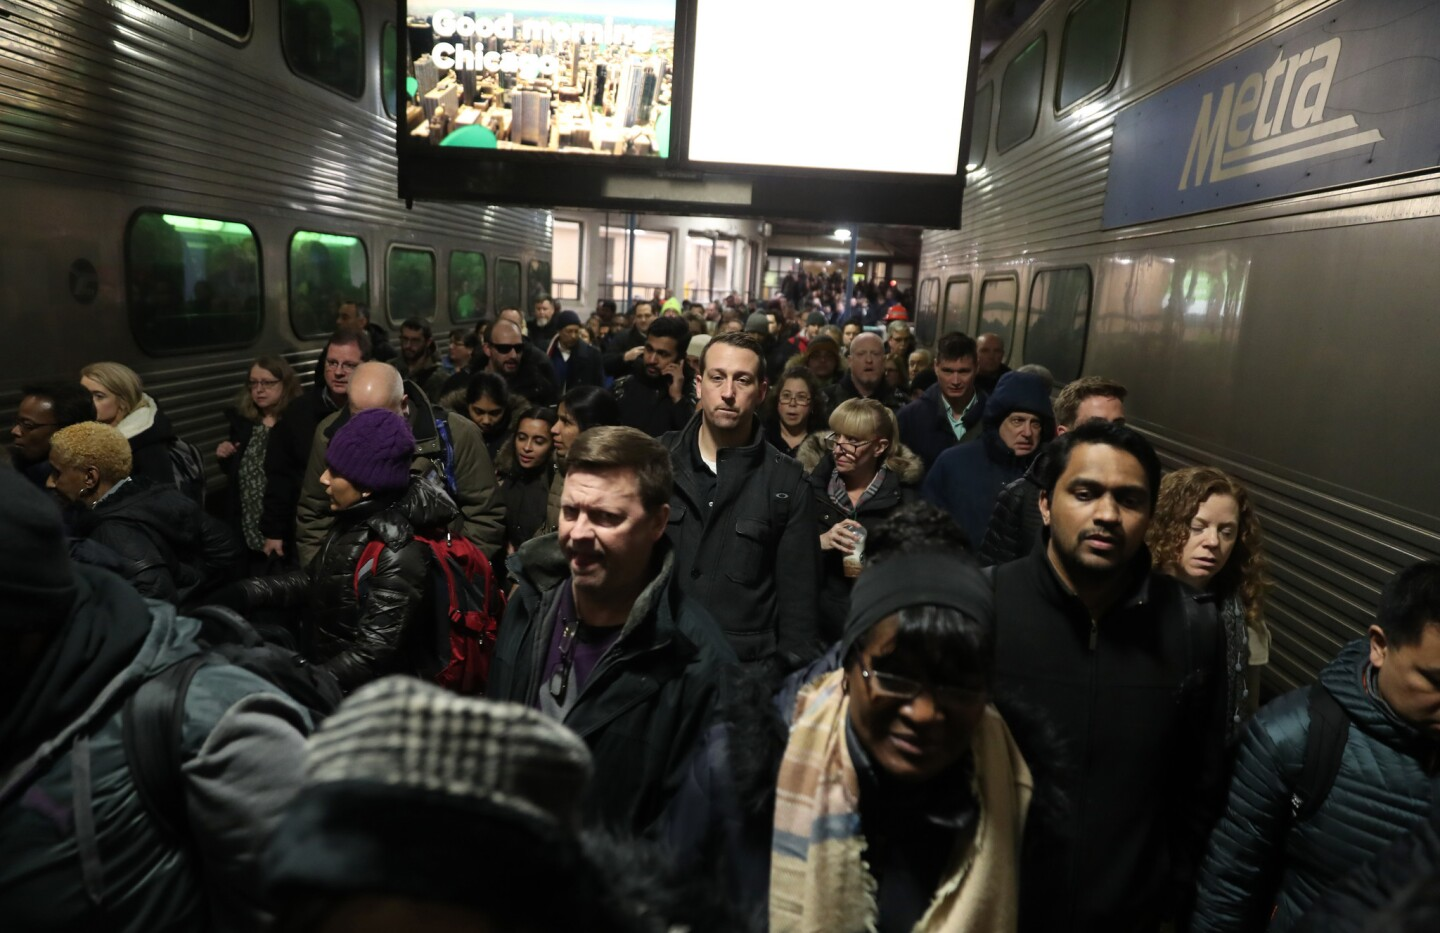 Metra passengers head for a BNSF line train to depart from Union Station on Feb. 28, 2019, in Chicago. An Amtrak computer signal problem caused trains to be delayed throughout the day.